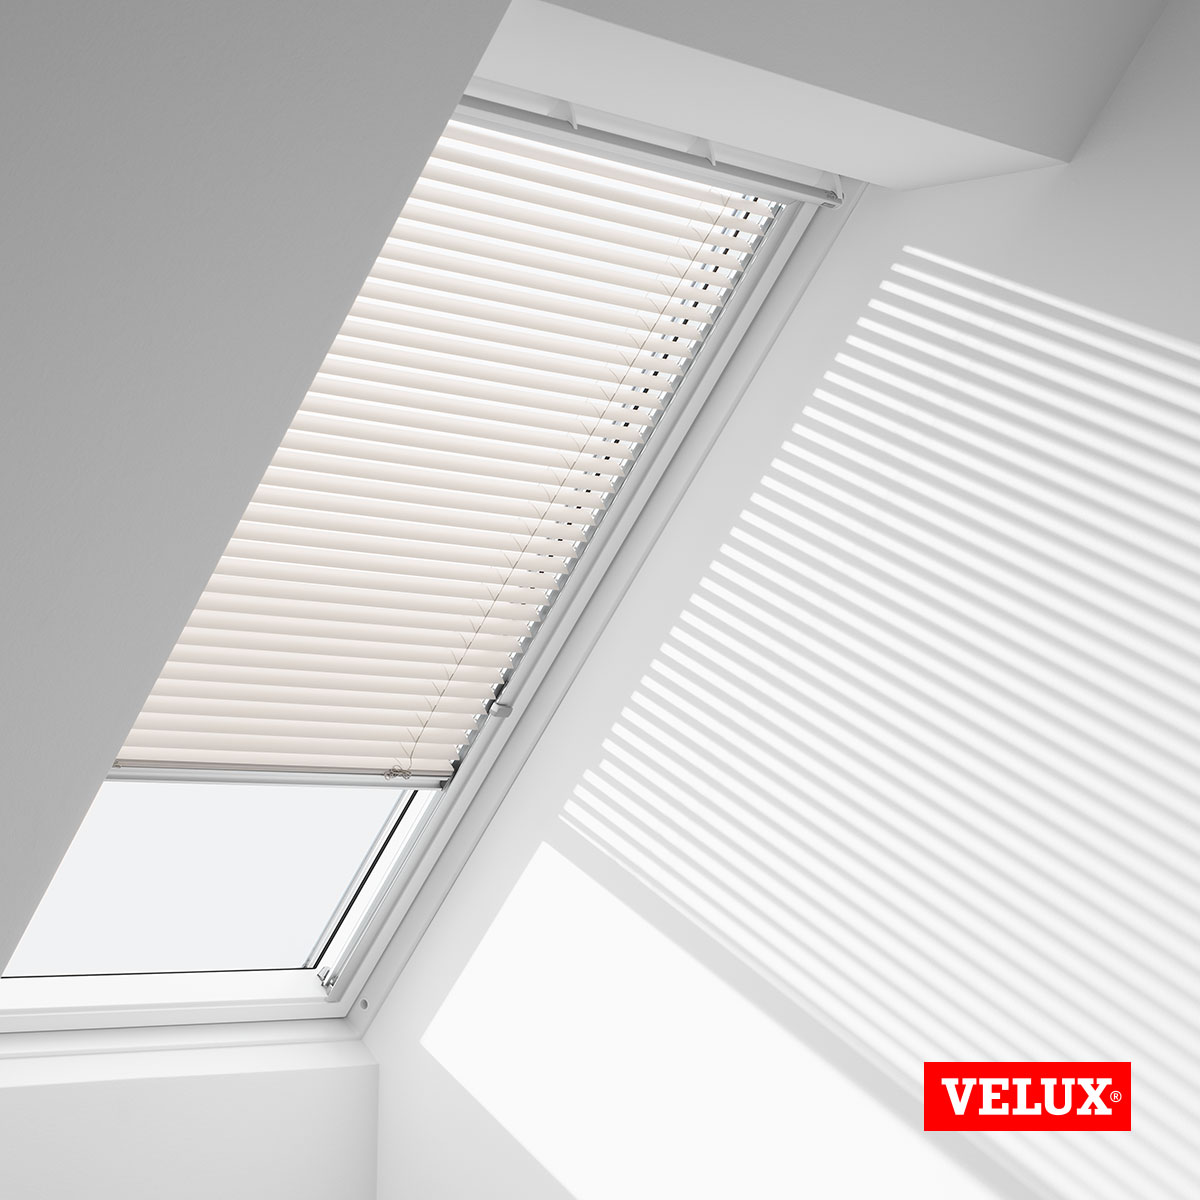 genuine velux venetian blinds made to match your velux roof window 9 designs ebay. Black Bedroom Furniture Sets. Home Design Ideas